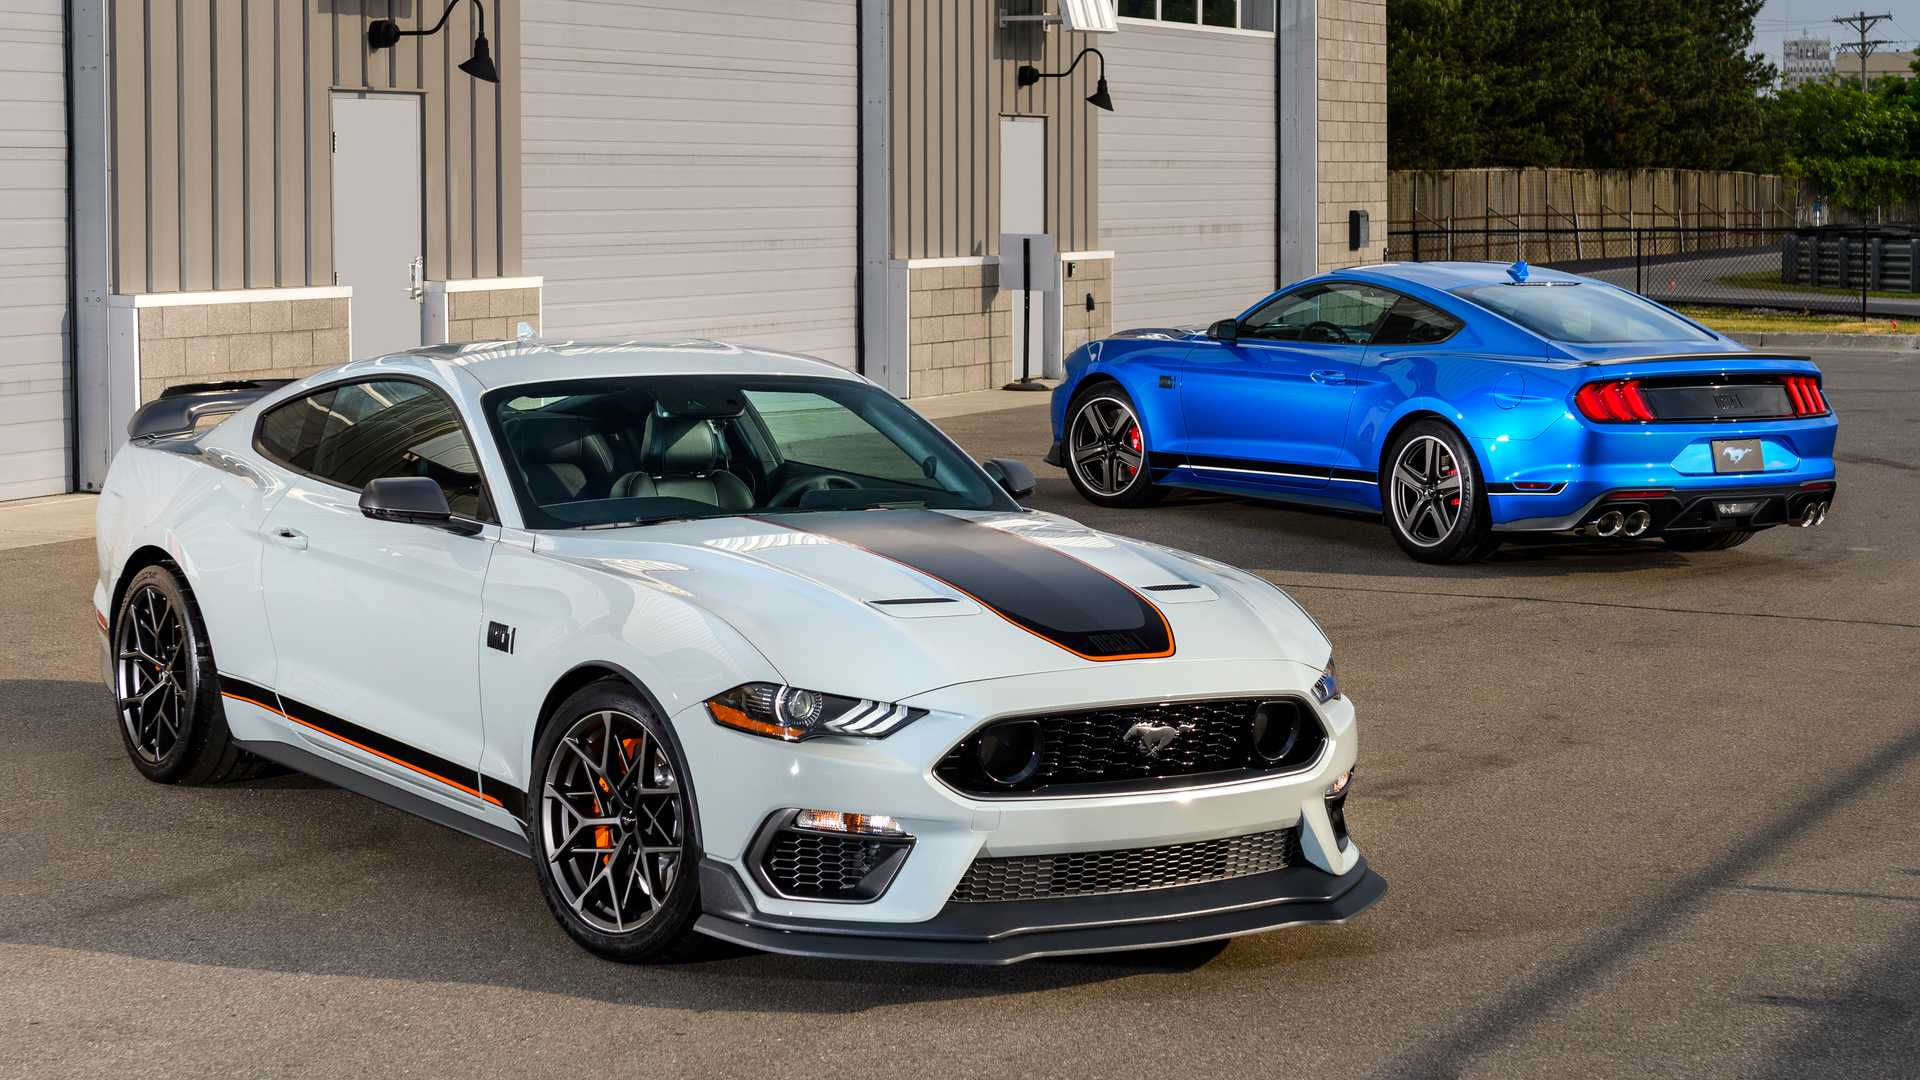 2020 Mustang Mach 1 New Model and Performance